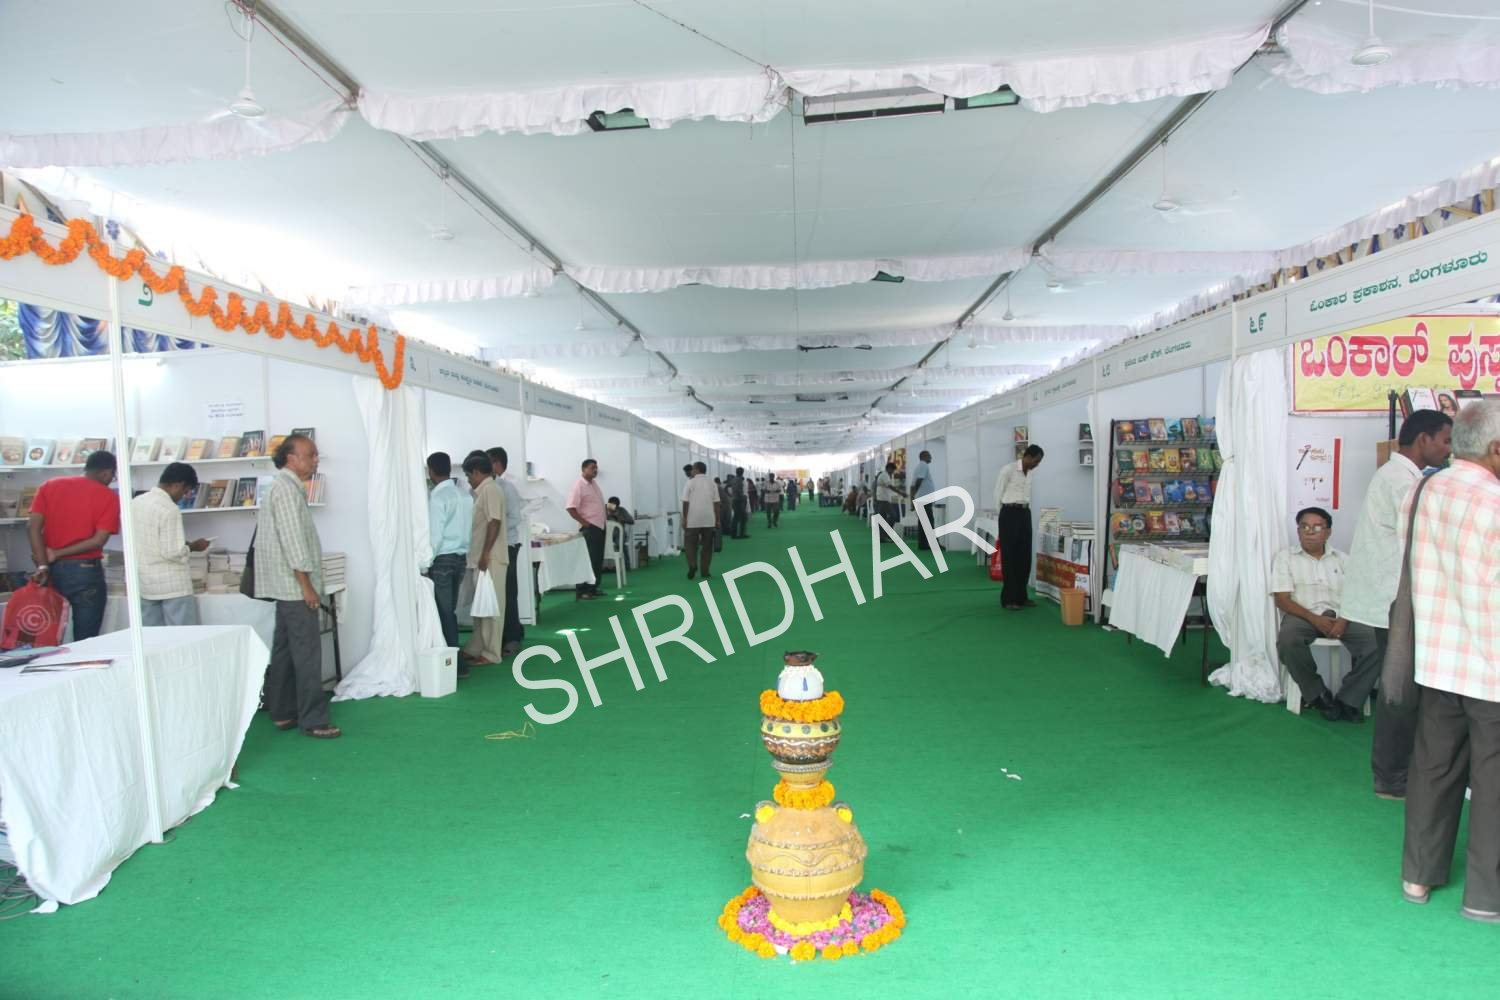 exhibition stalls for rent for hire in bangalore contact shridhar tent house bangalore karnataka